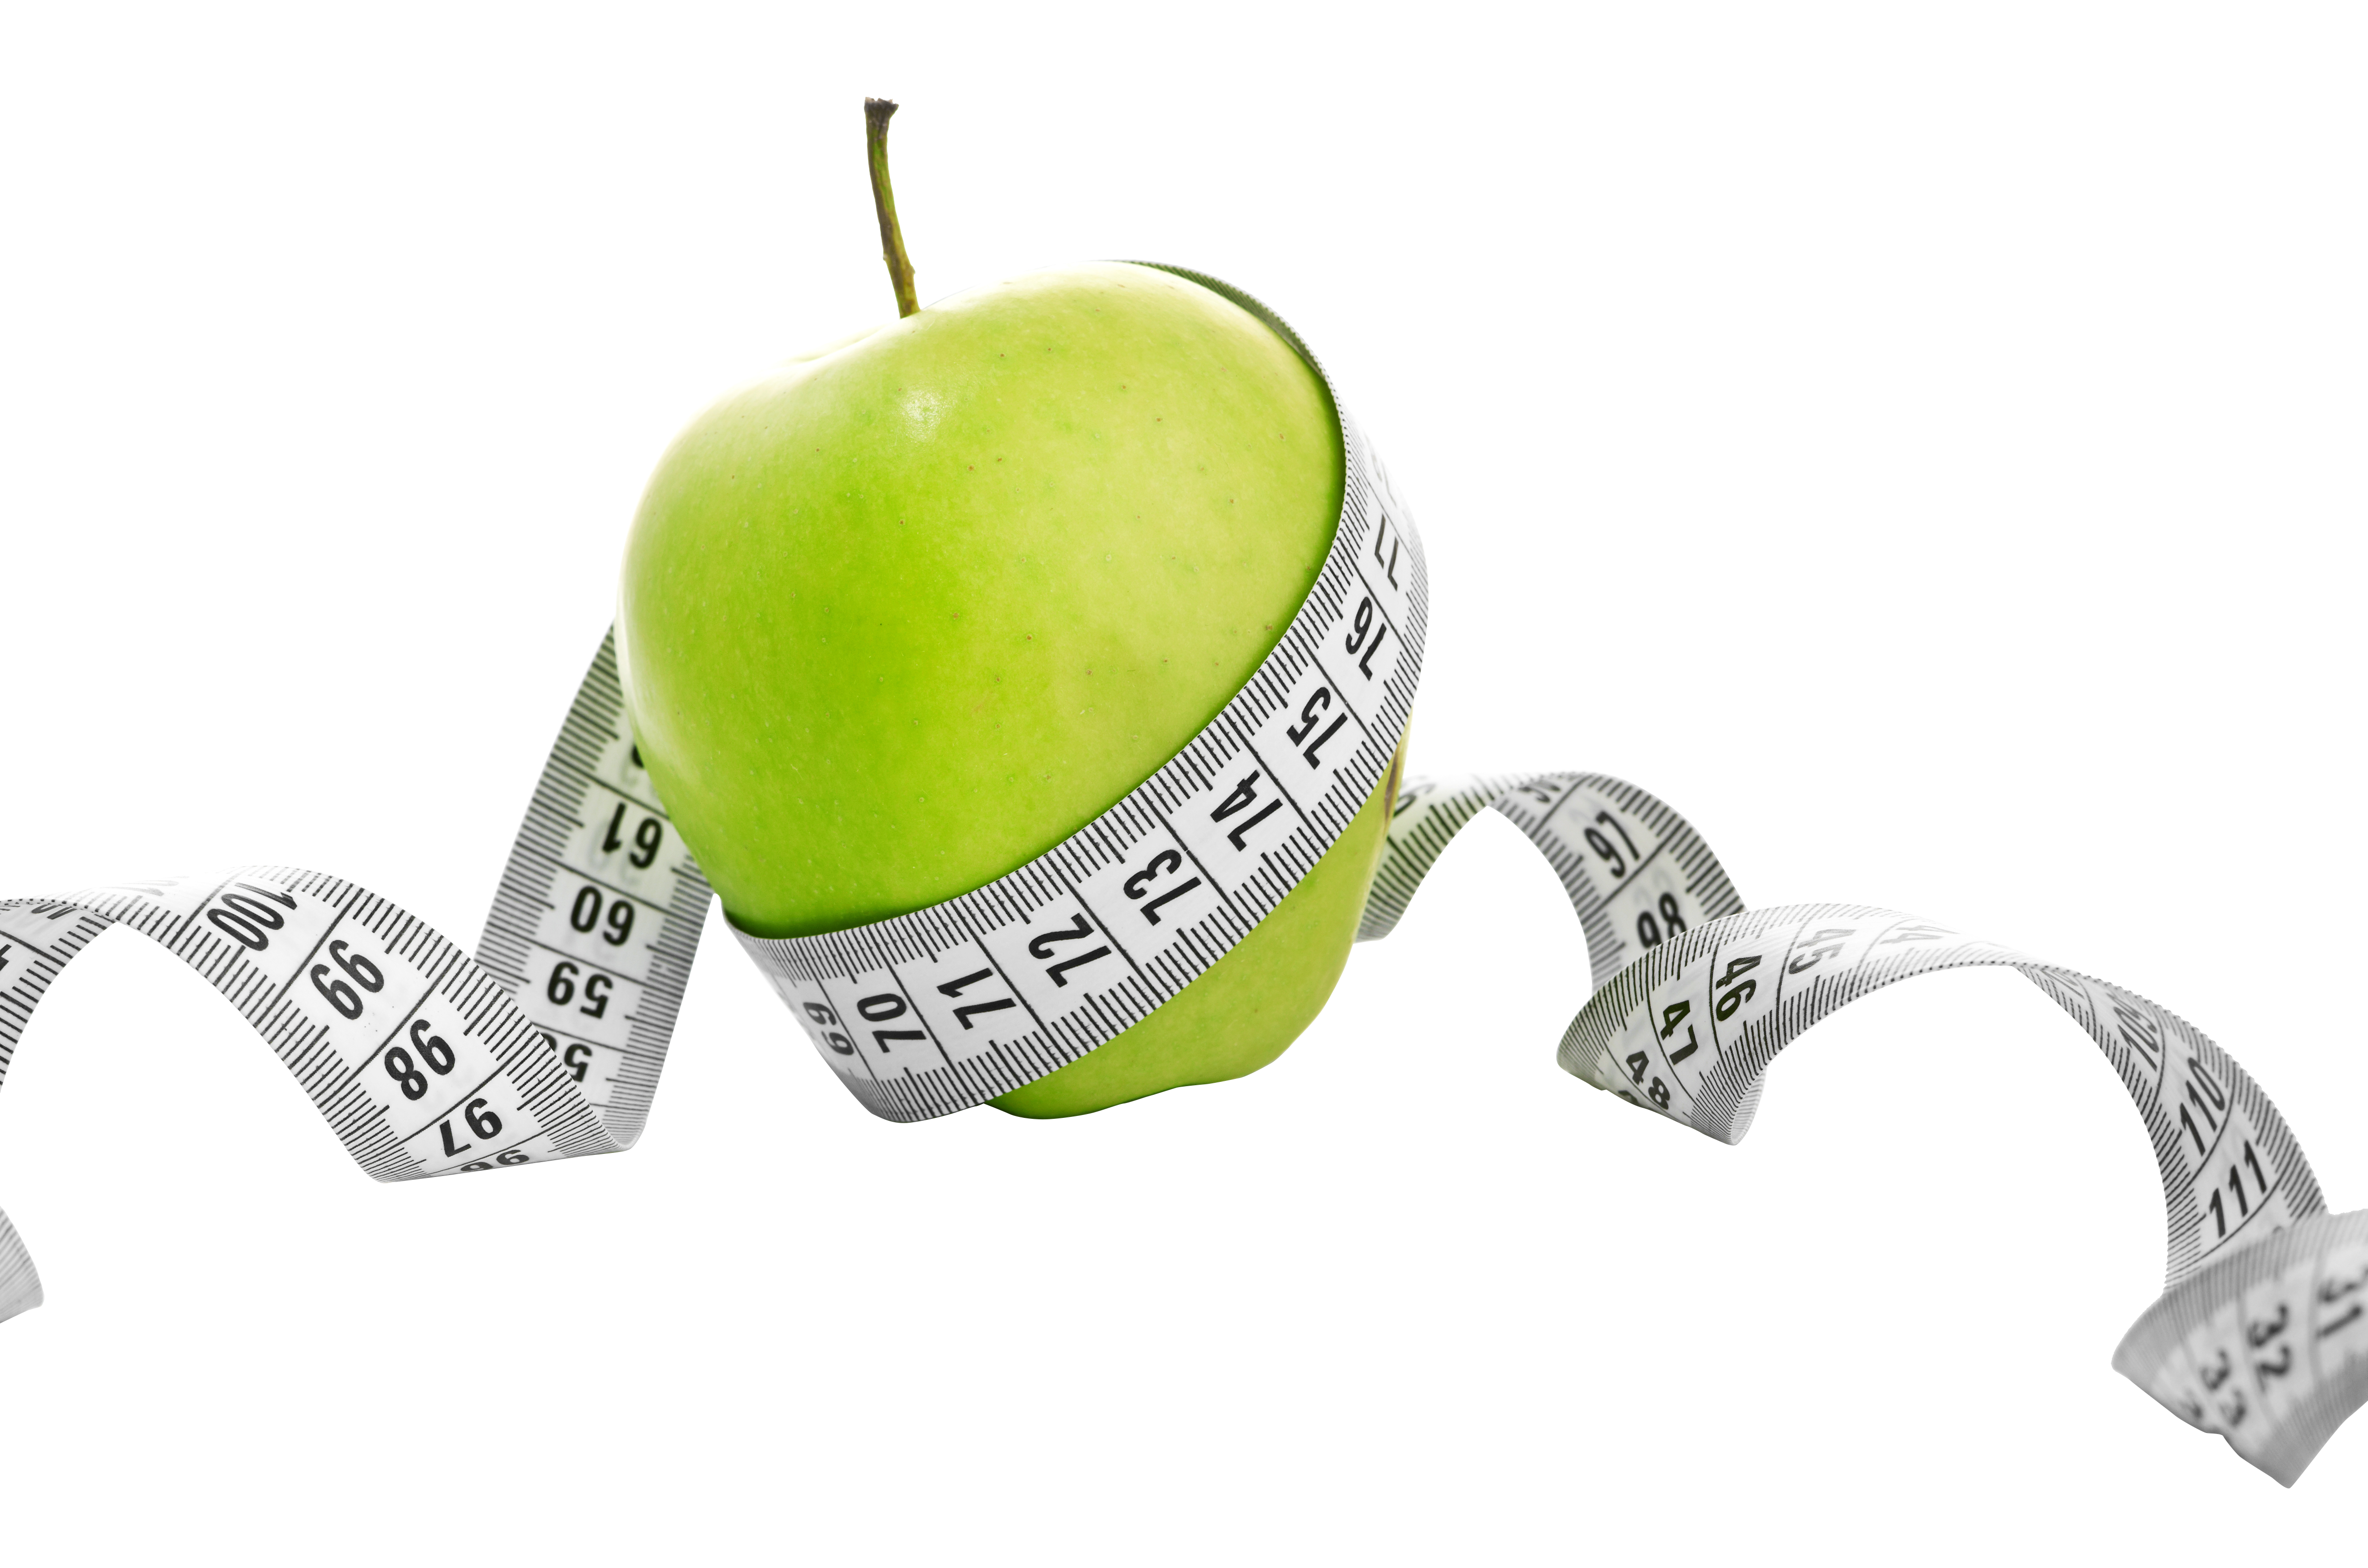 And Loss Management Apple Weight Wellness Measure PNG Image